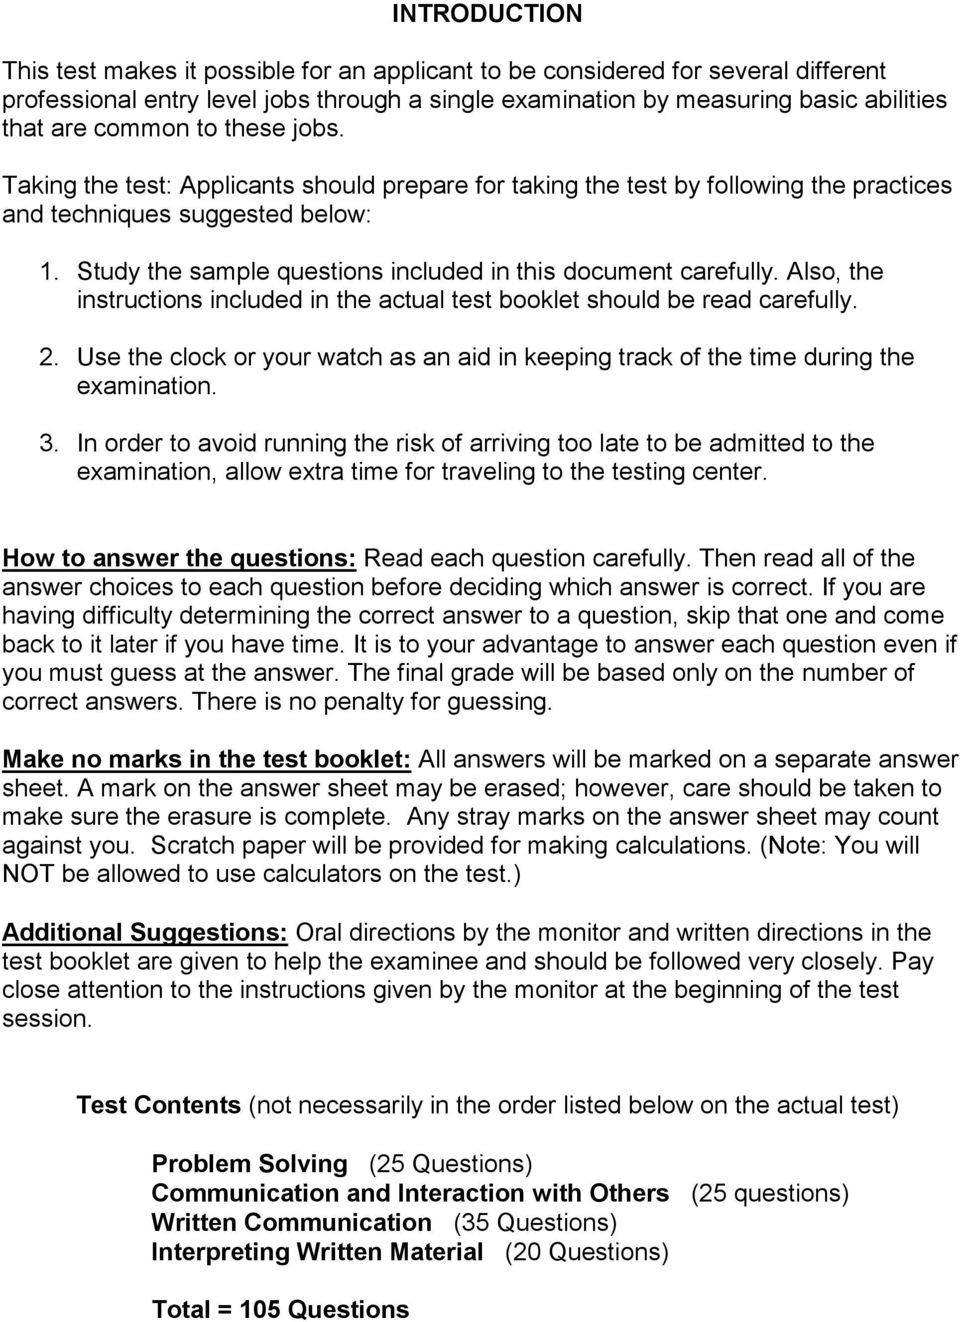 sample questions for series 8100 professional level exam ple pdf rh docplayer net Blank Study Guide Template Study Guide Format